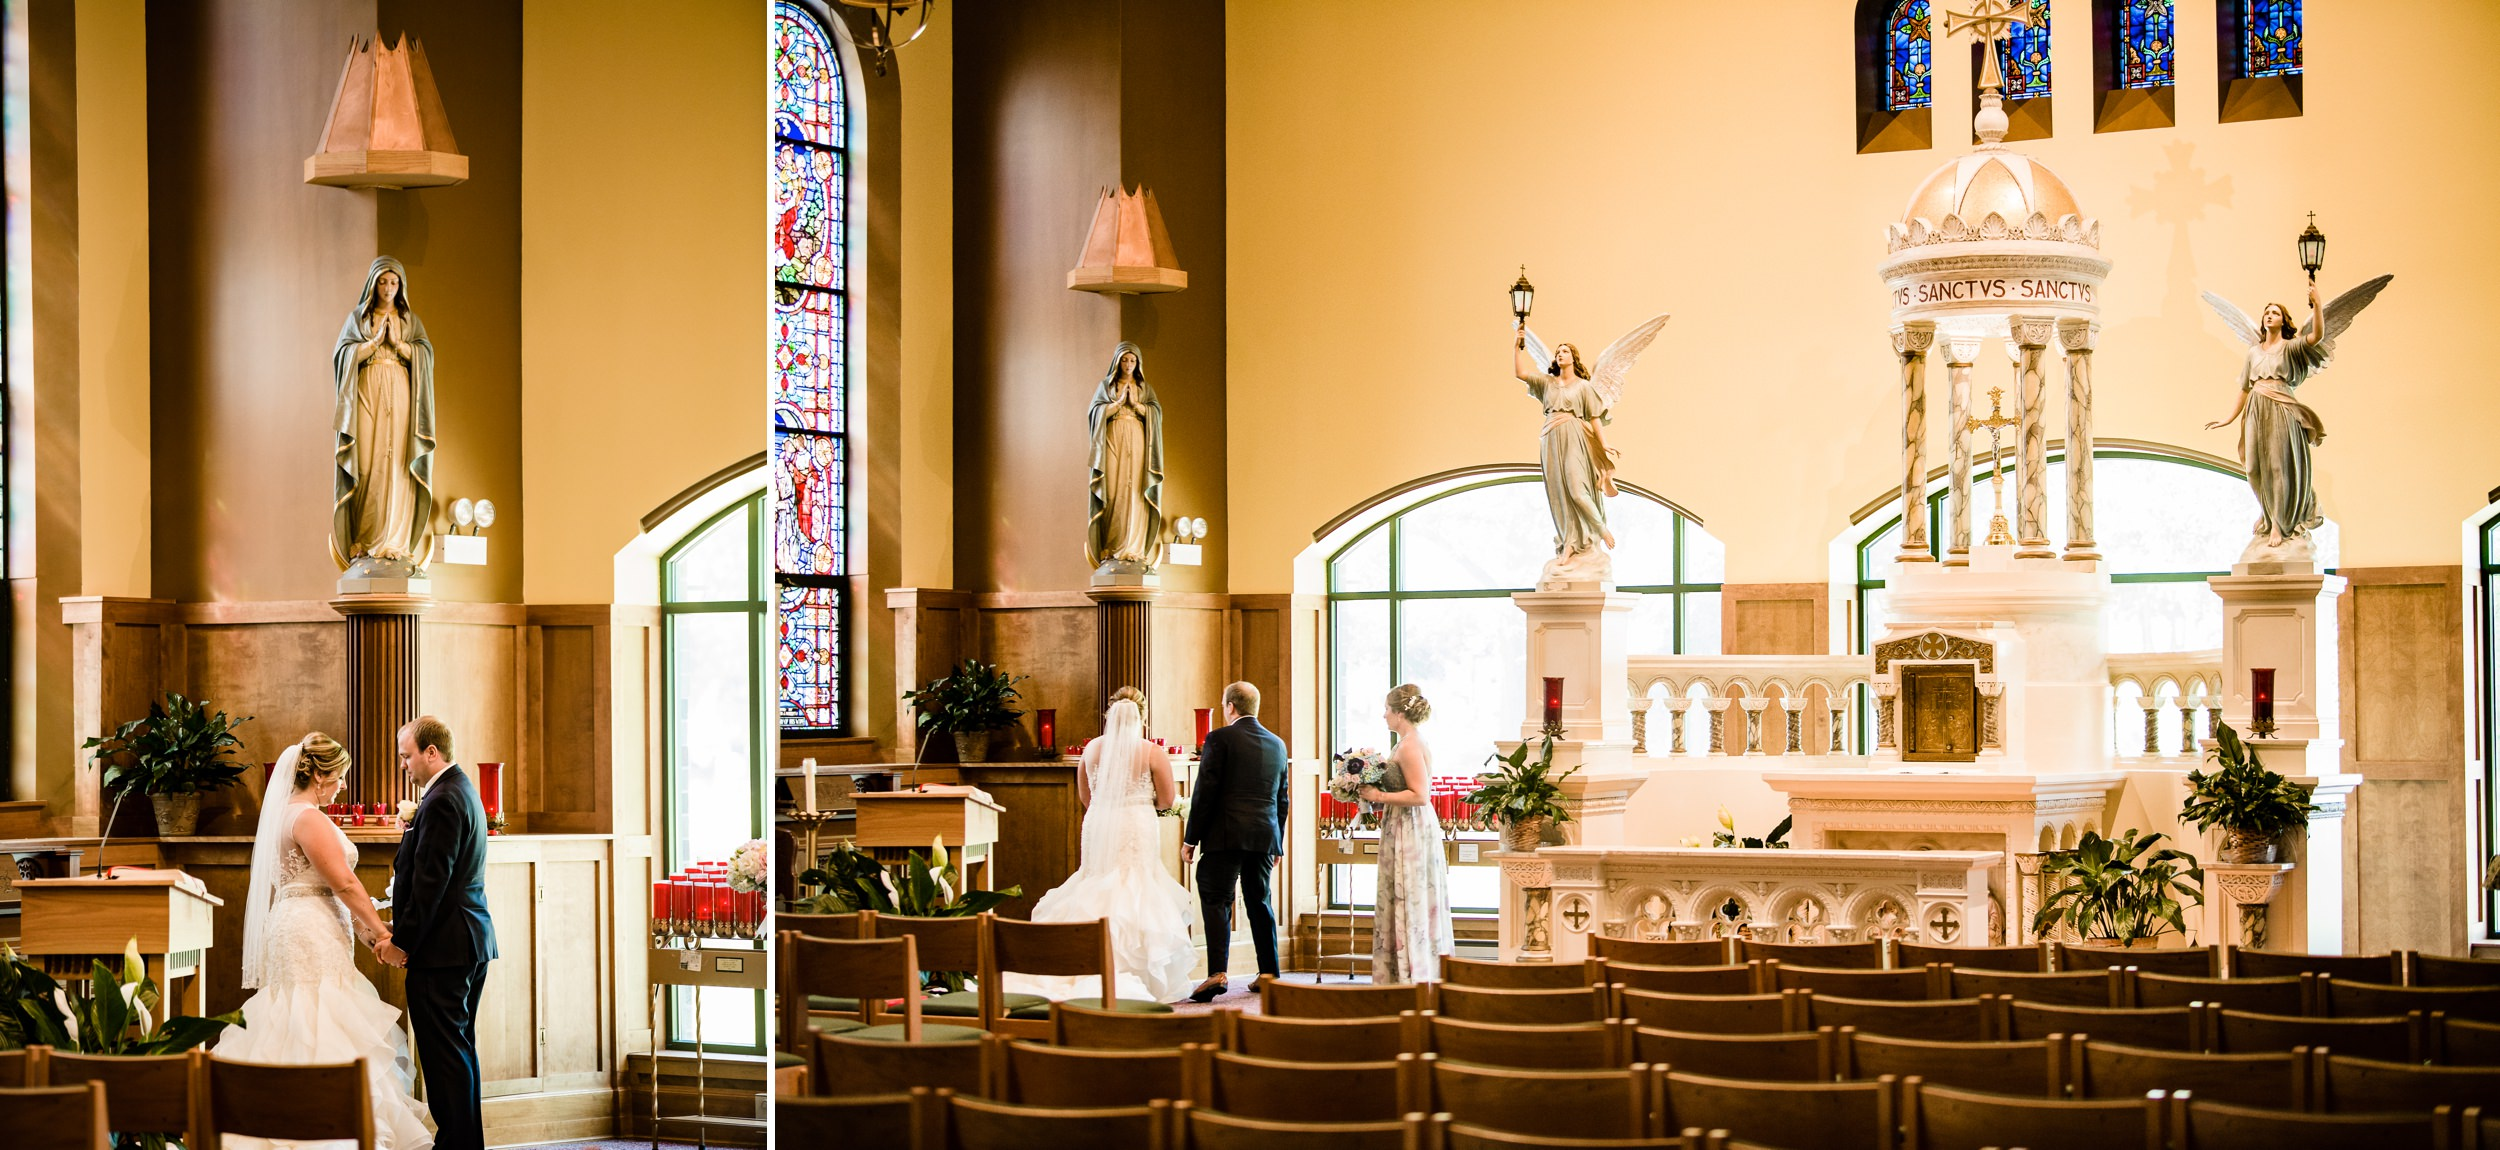 Bride and groom inside the sanctuary at St. Michael's Parish.